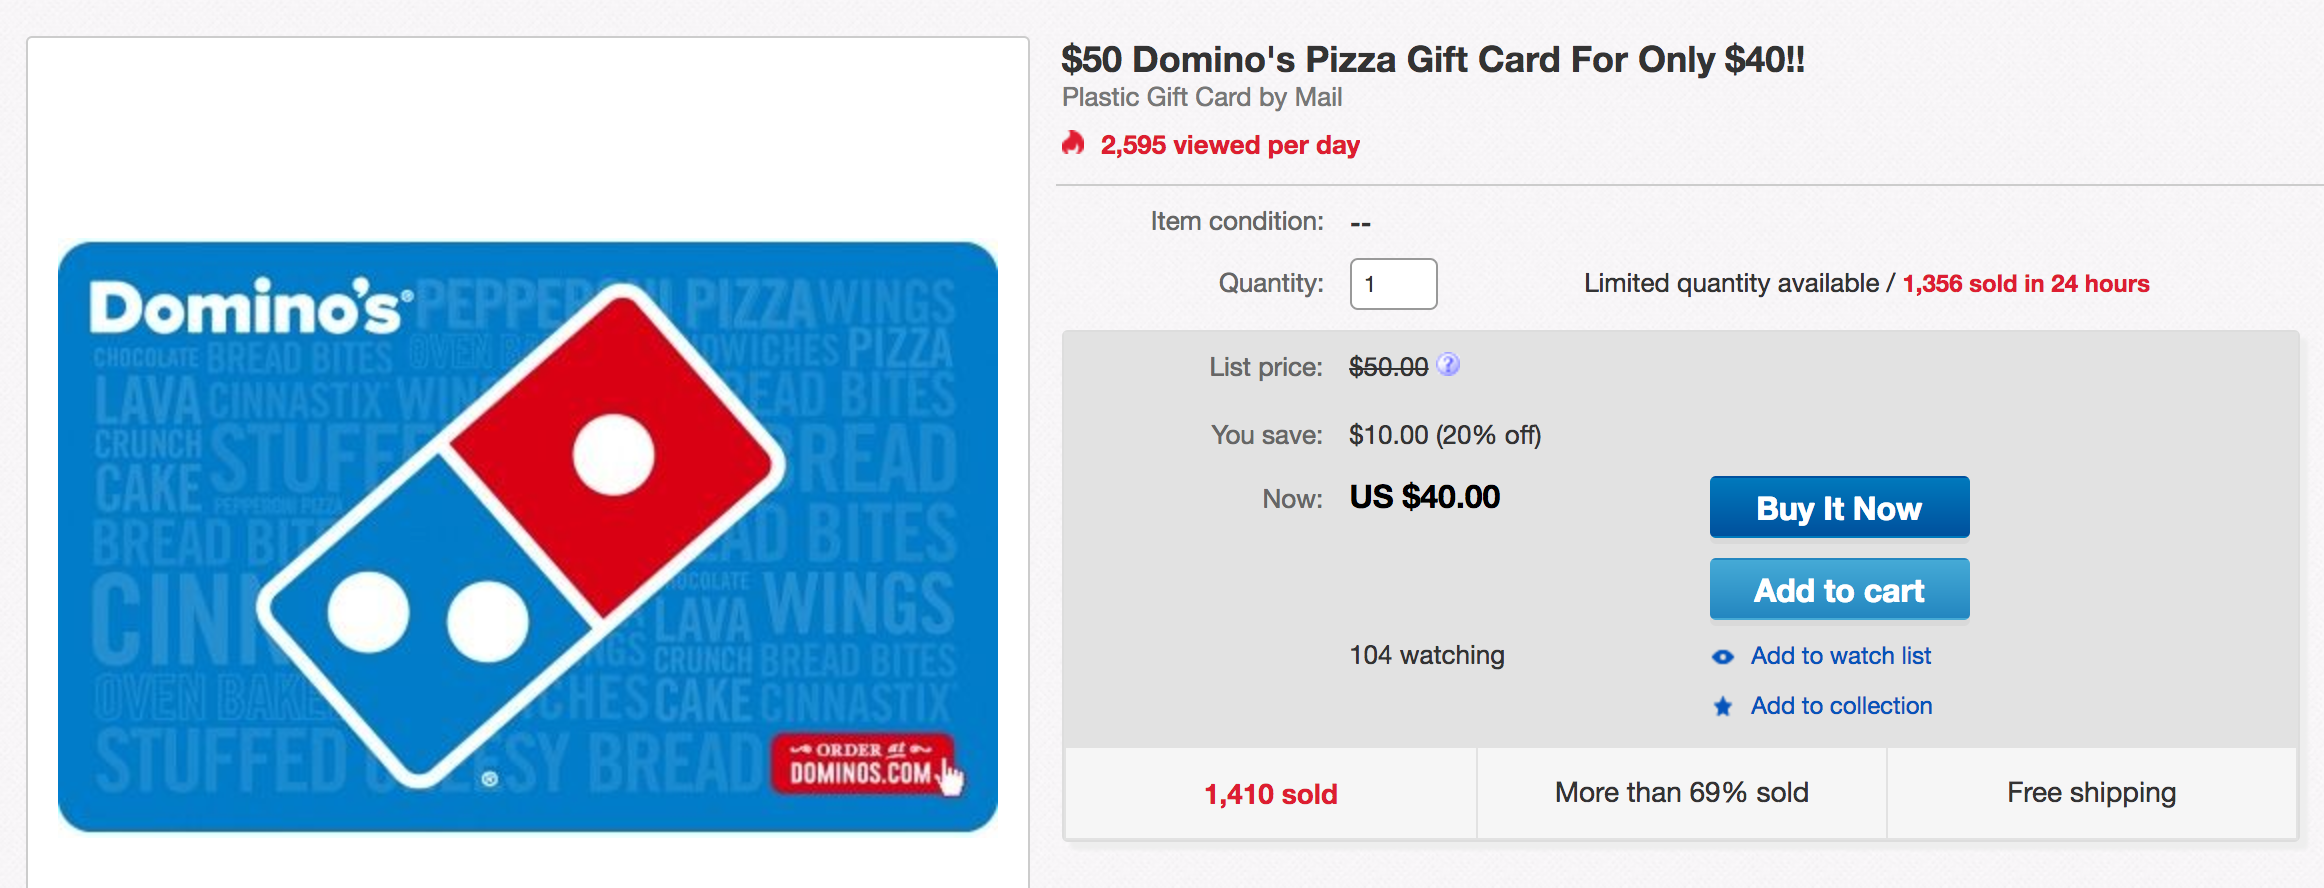 dominos-gift-card-sale-01